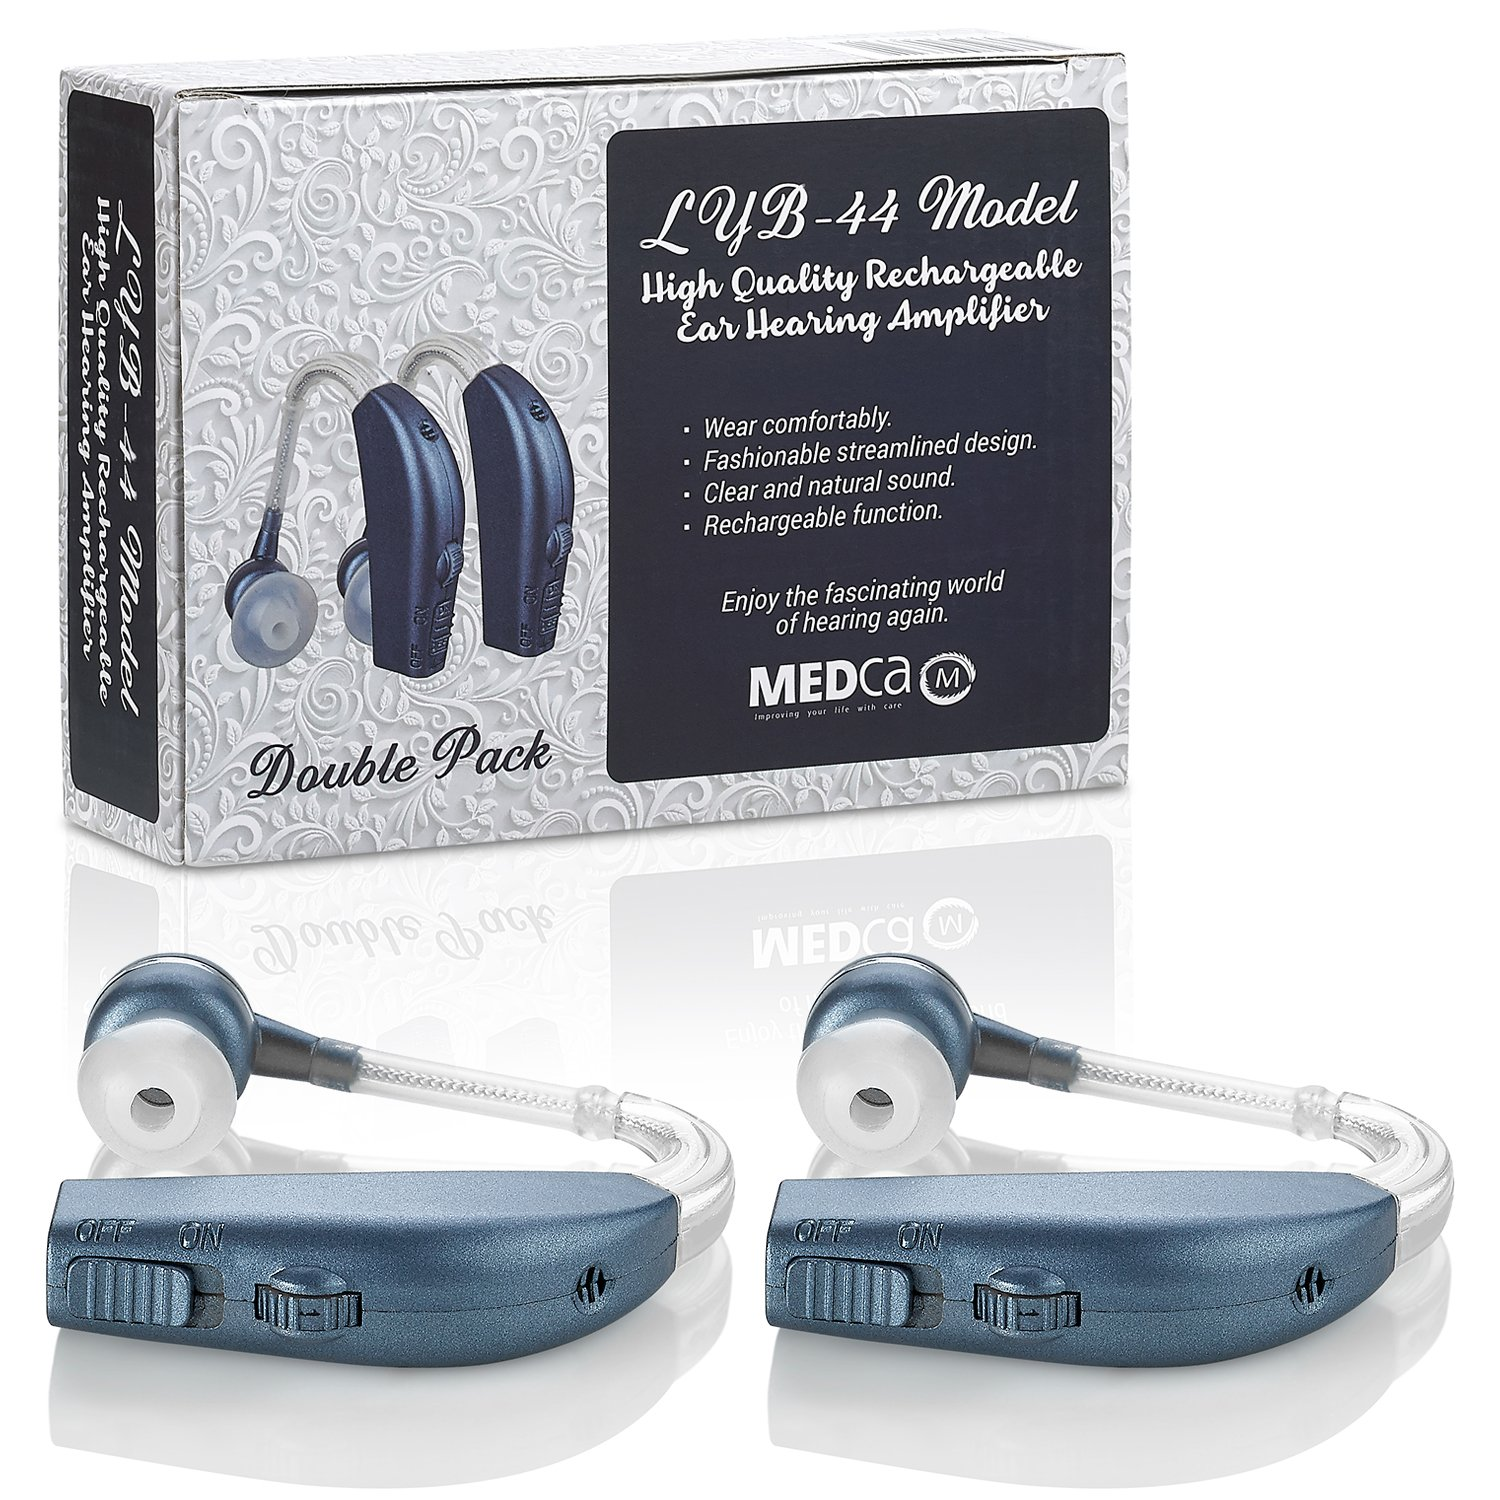 Digital Hearing Amplifier Pair Of 2 Personal Living Aids Amplifiers Accessories Enhancement Sound Rechargeable With All Day